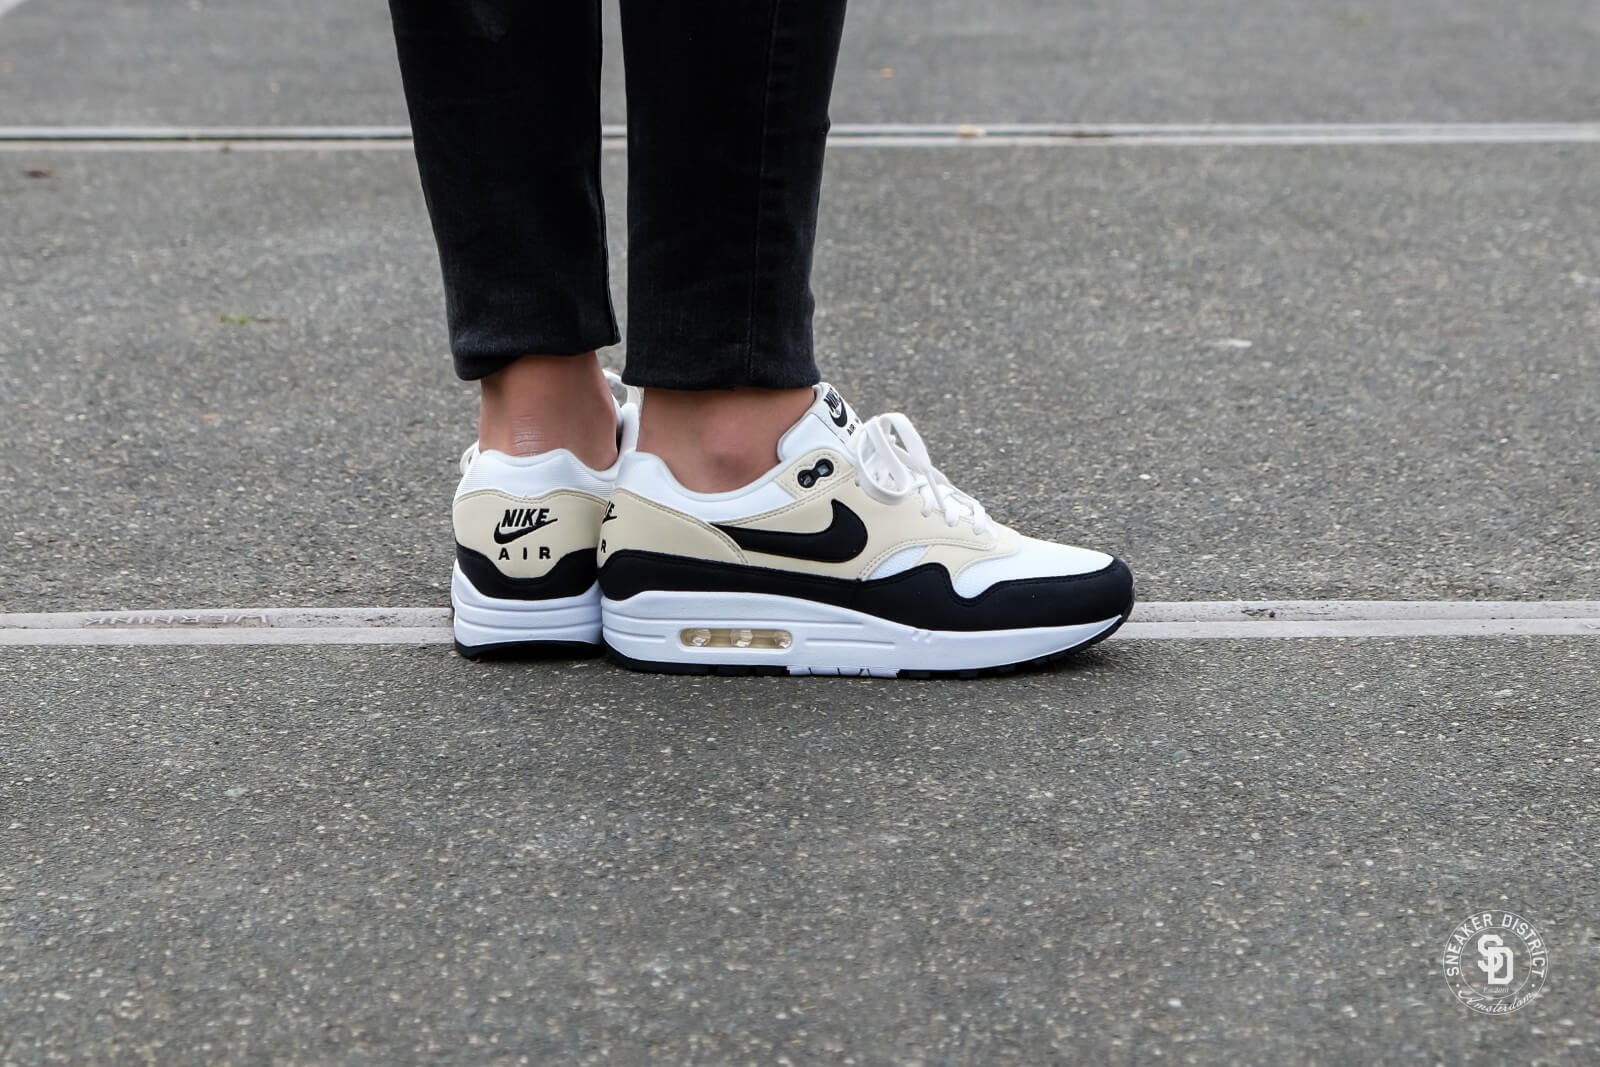 Nike Women's Air Max 1 Sail/Black-Fossil